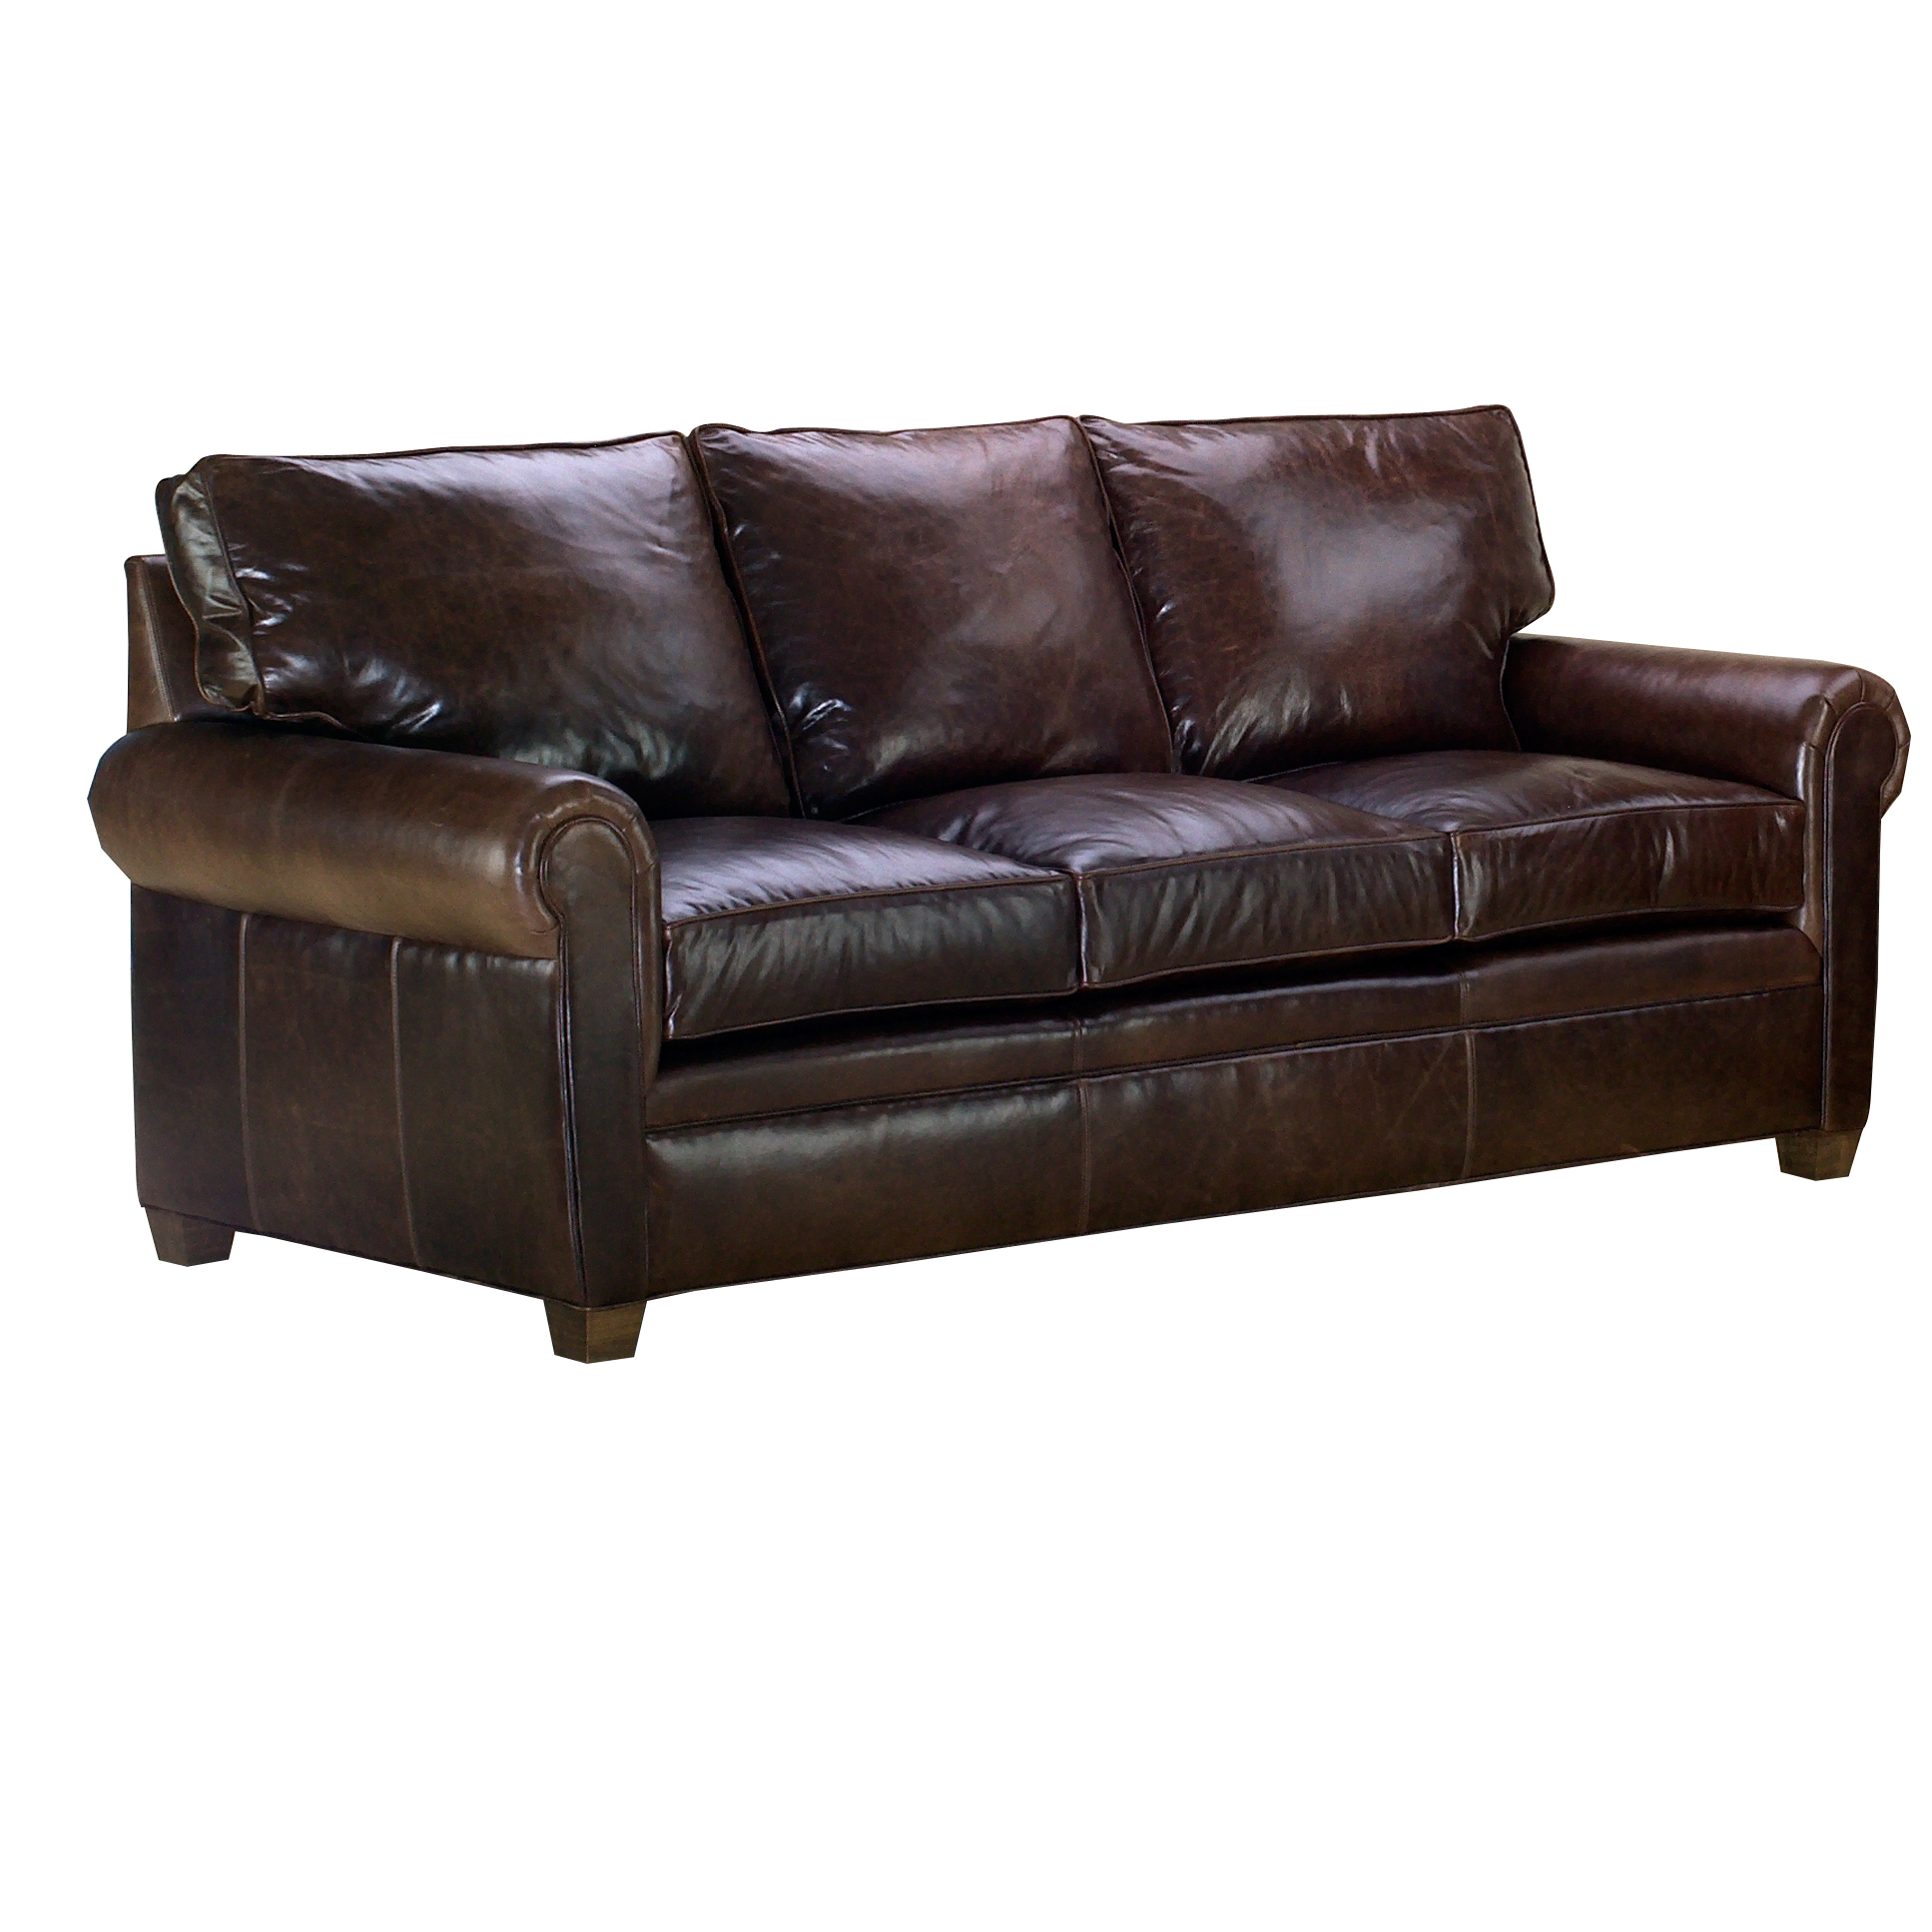 SFL00046 living room sofa furniture